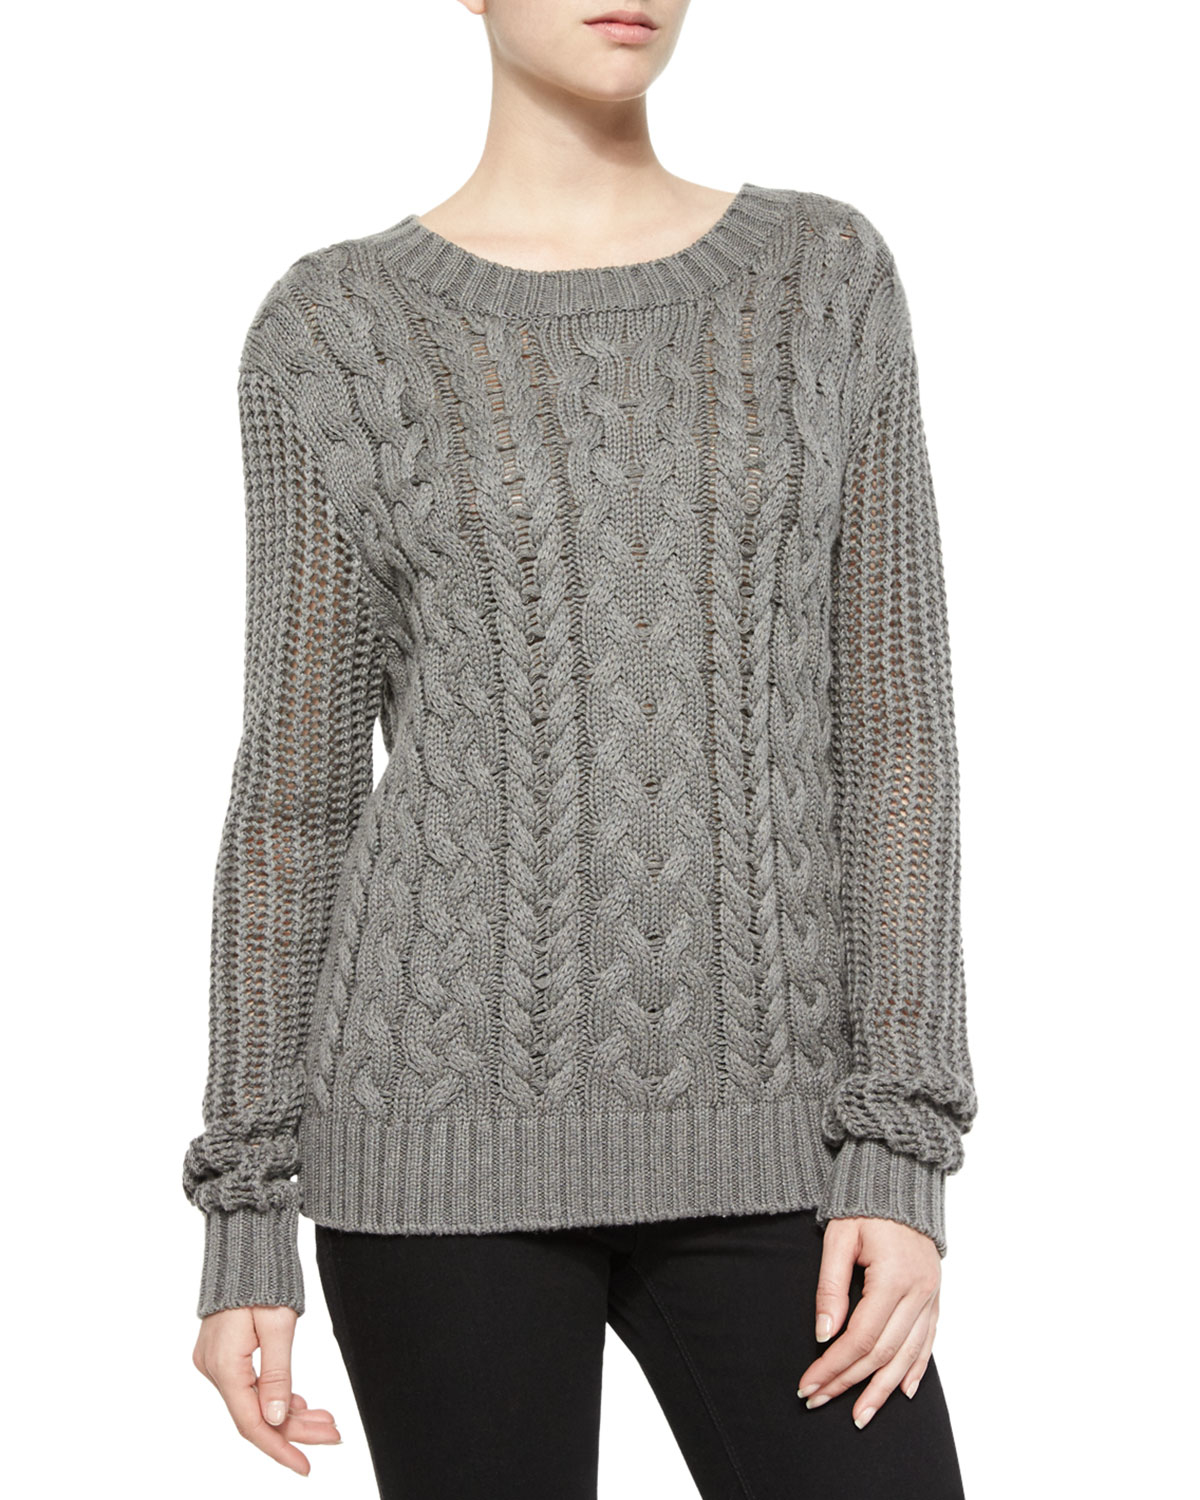 Cable Car Pullover $ - $ New / Sale Corrie Sweater $ - $ New / Sale Game Theory $ - $ New / Sale.